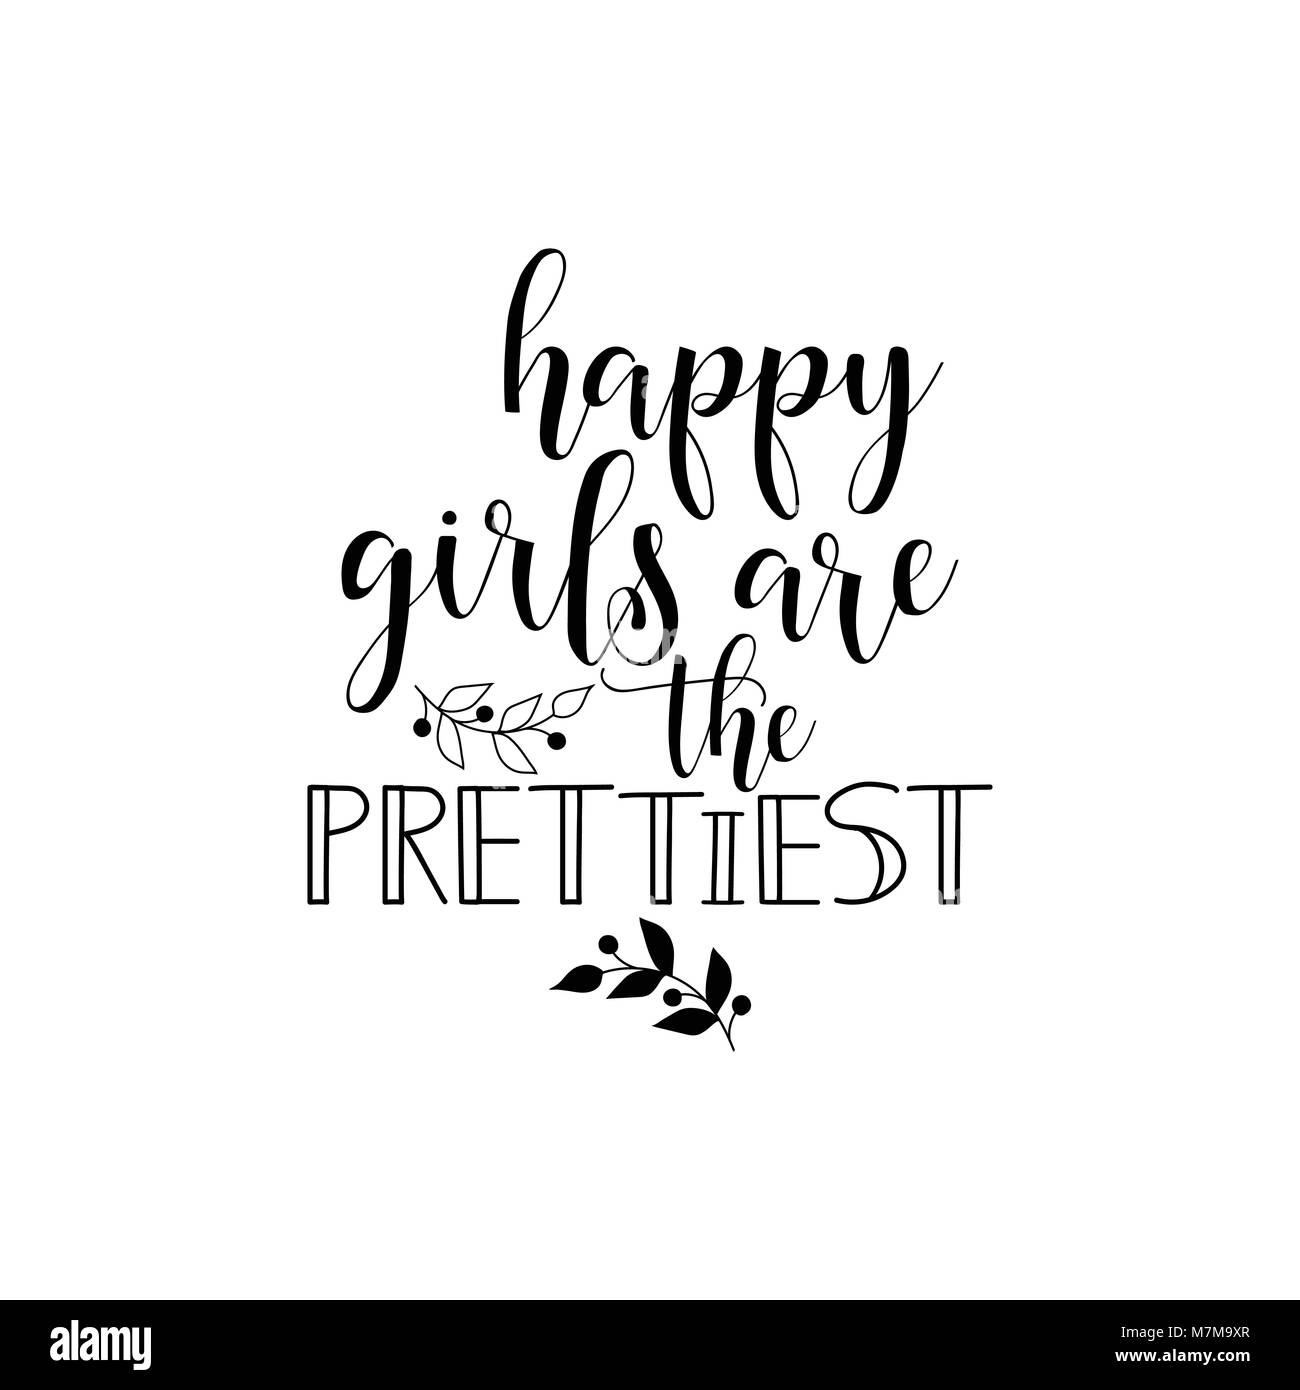 Happy girls are the prettiest. lettering. Hand drawn vector illustration. element for flyers, banner, postcards - Stock Image